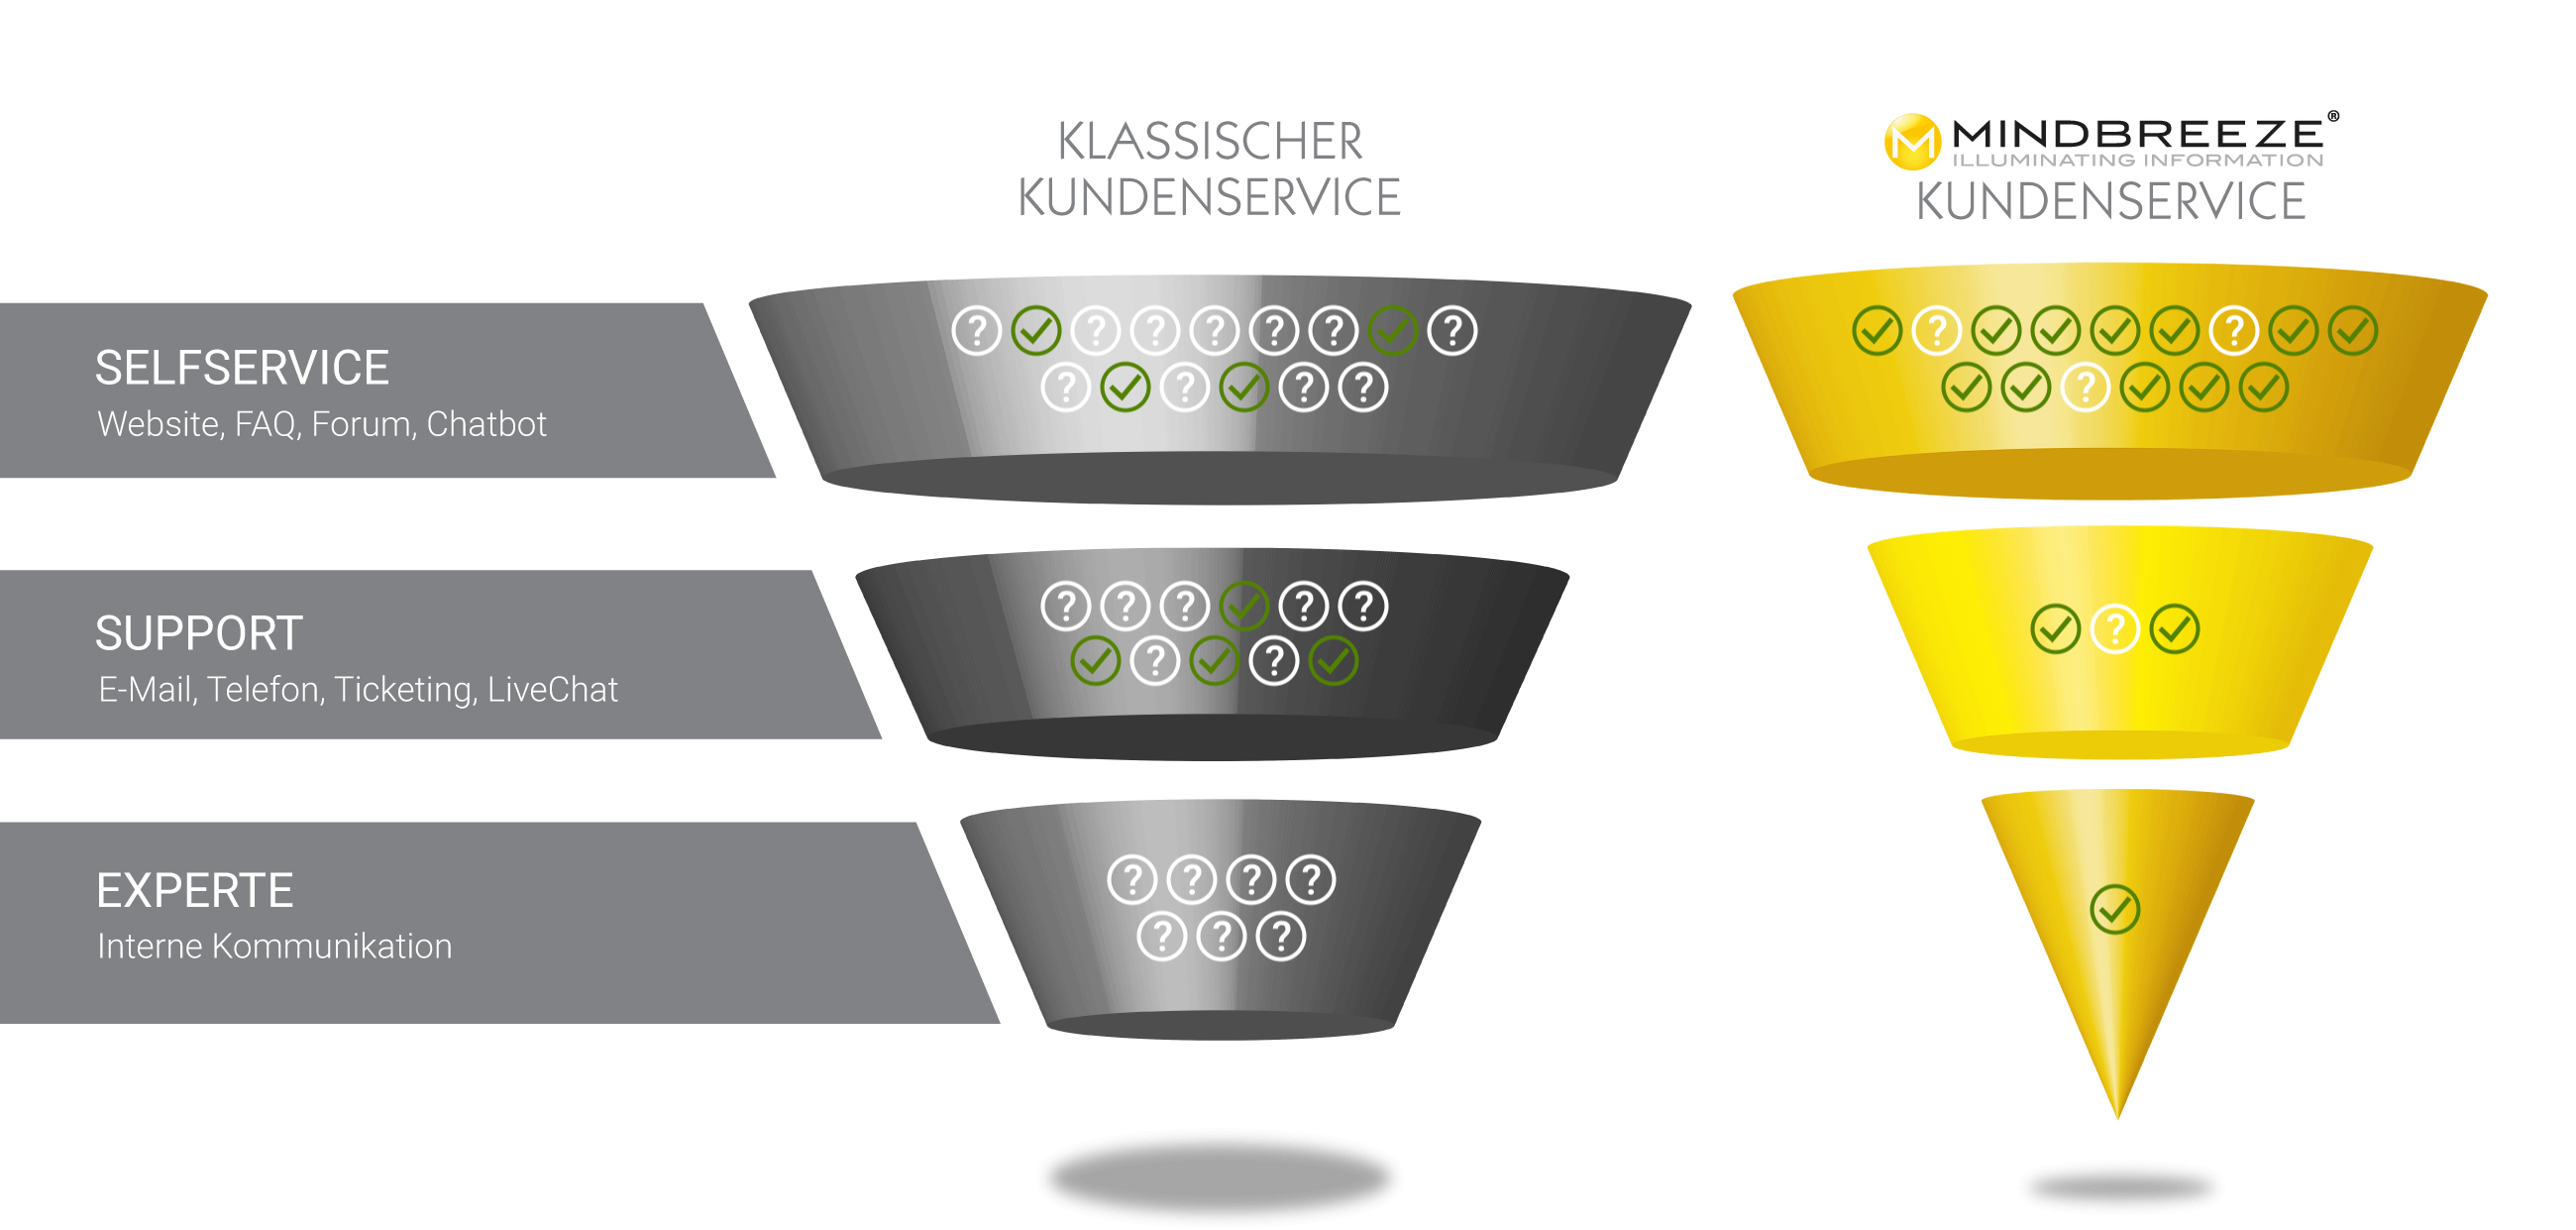 customerfunnel_mindbreeze_de.jpg